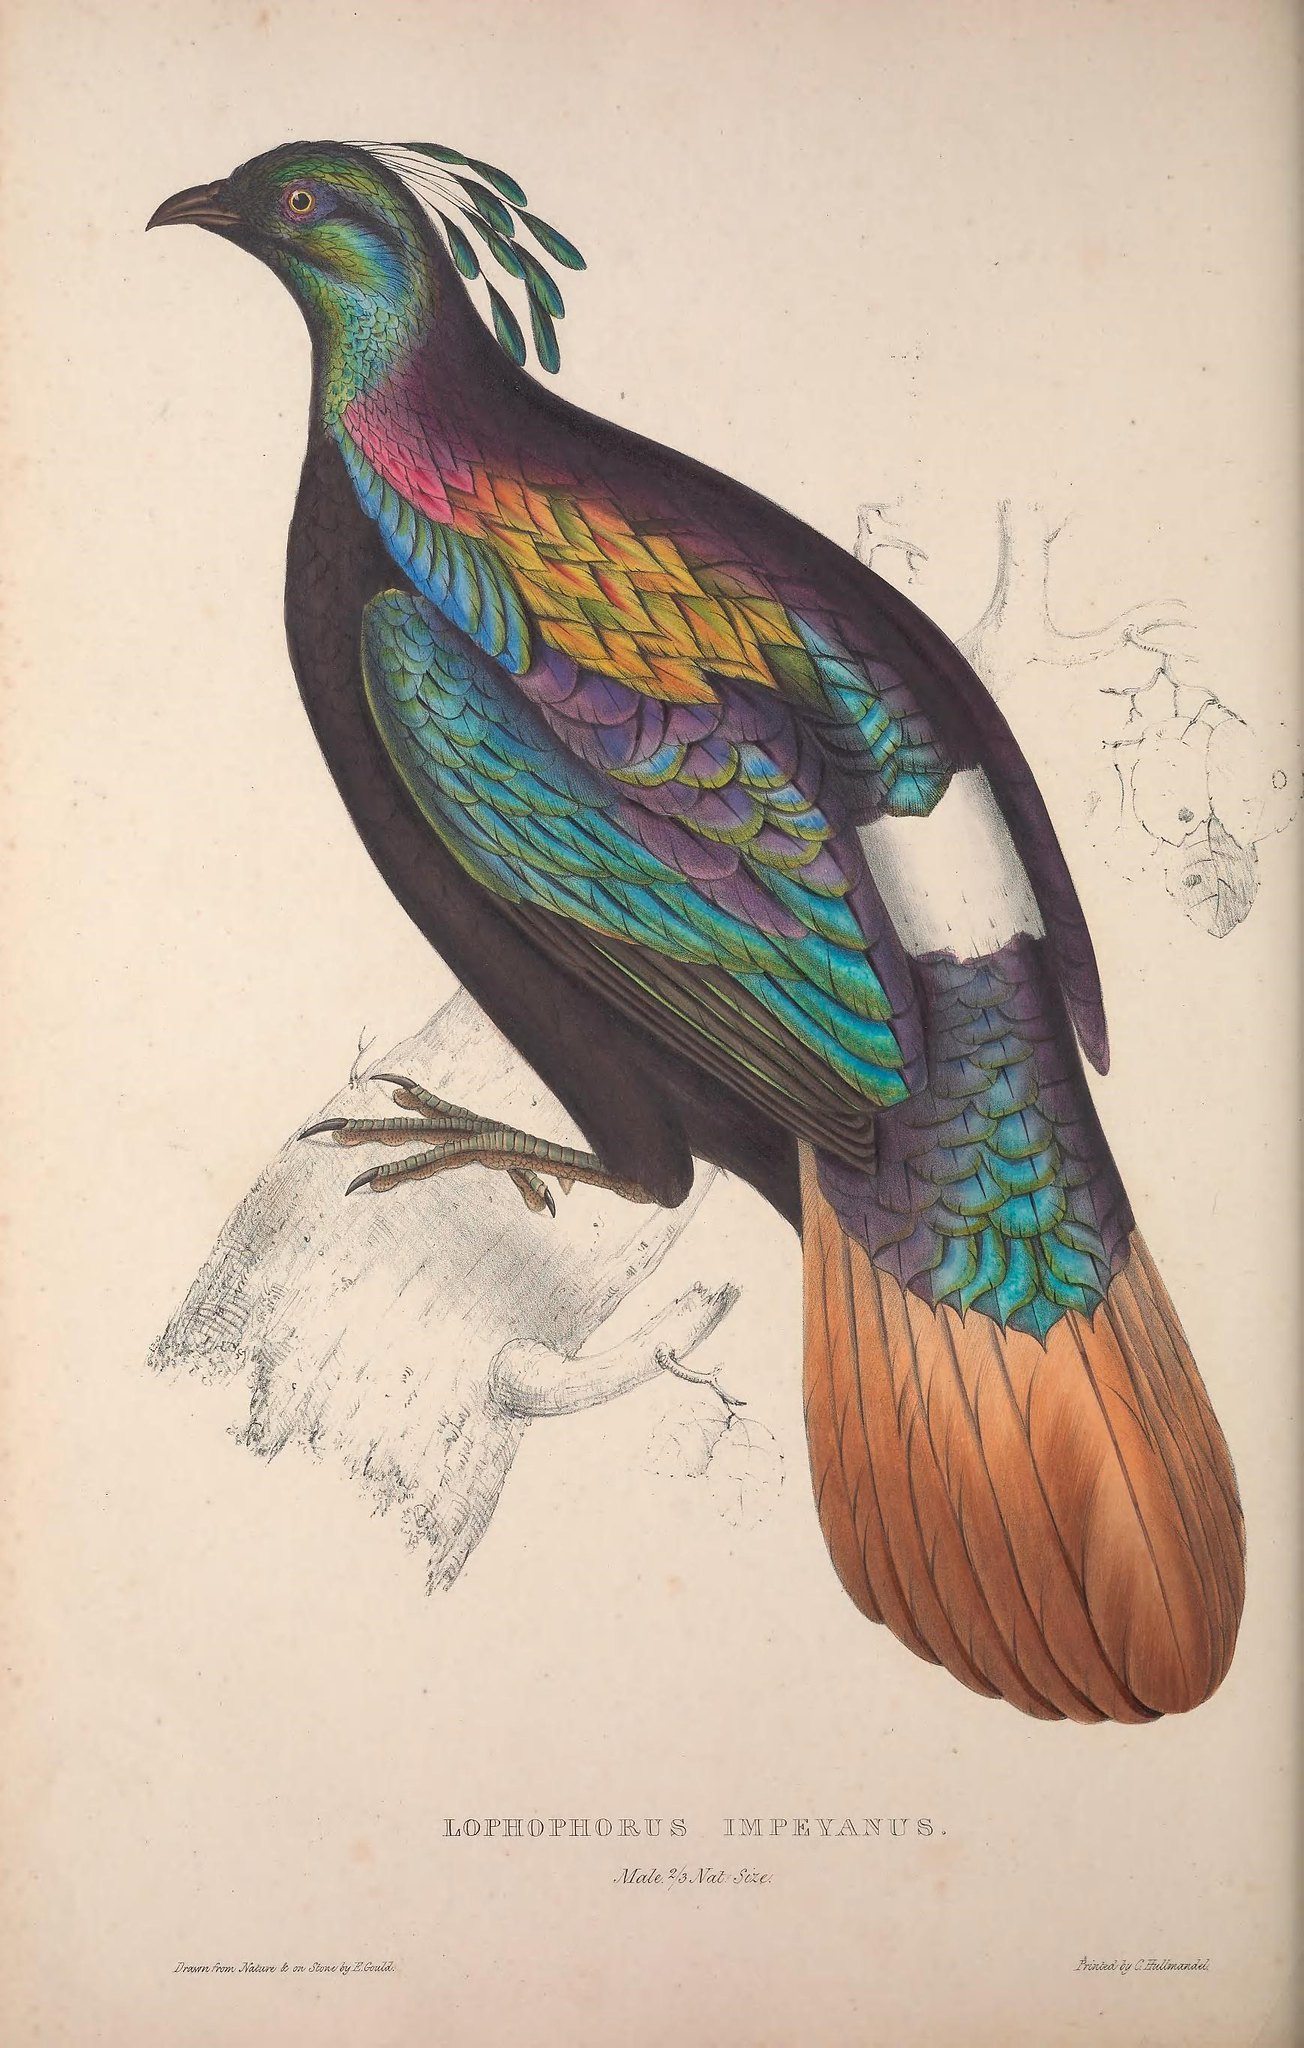 Illustration of a bird with colors including green, orange, black, pink, purple, and white.